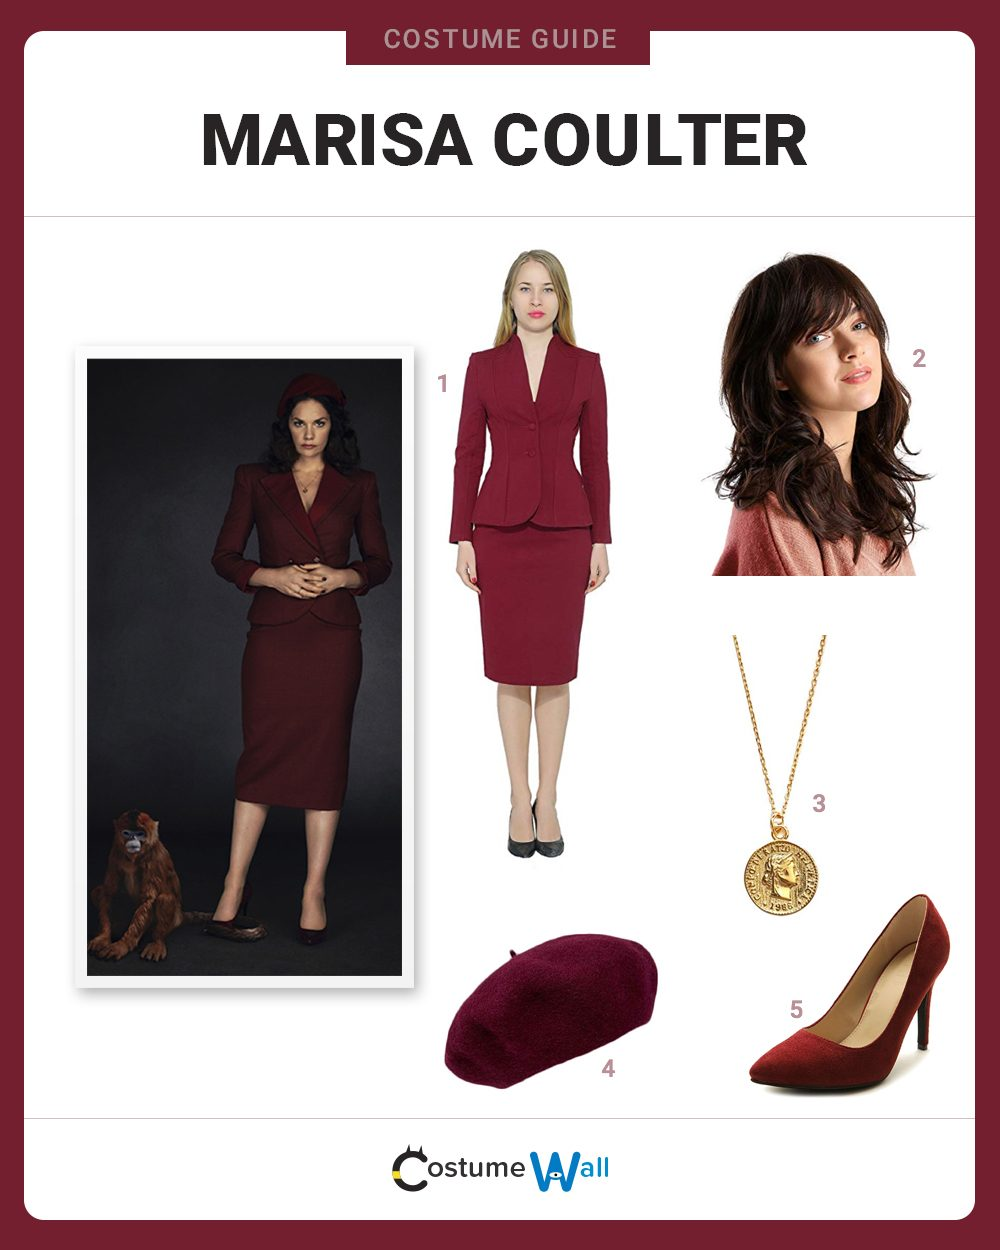 Marisa Coulter Costume Guide